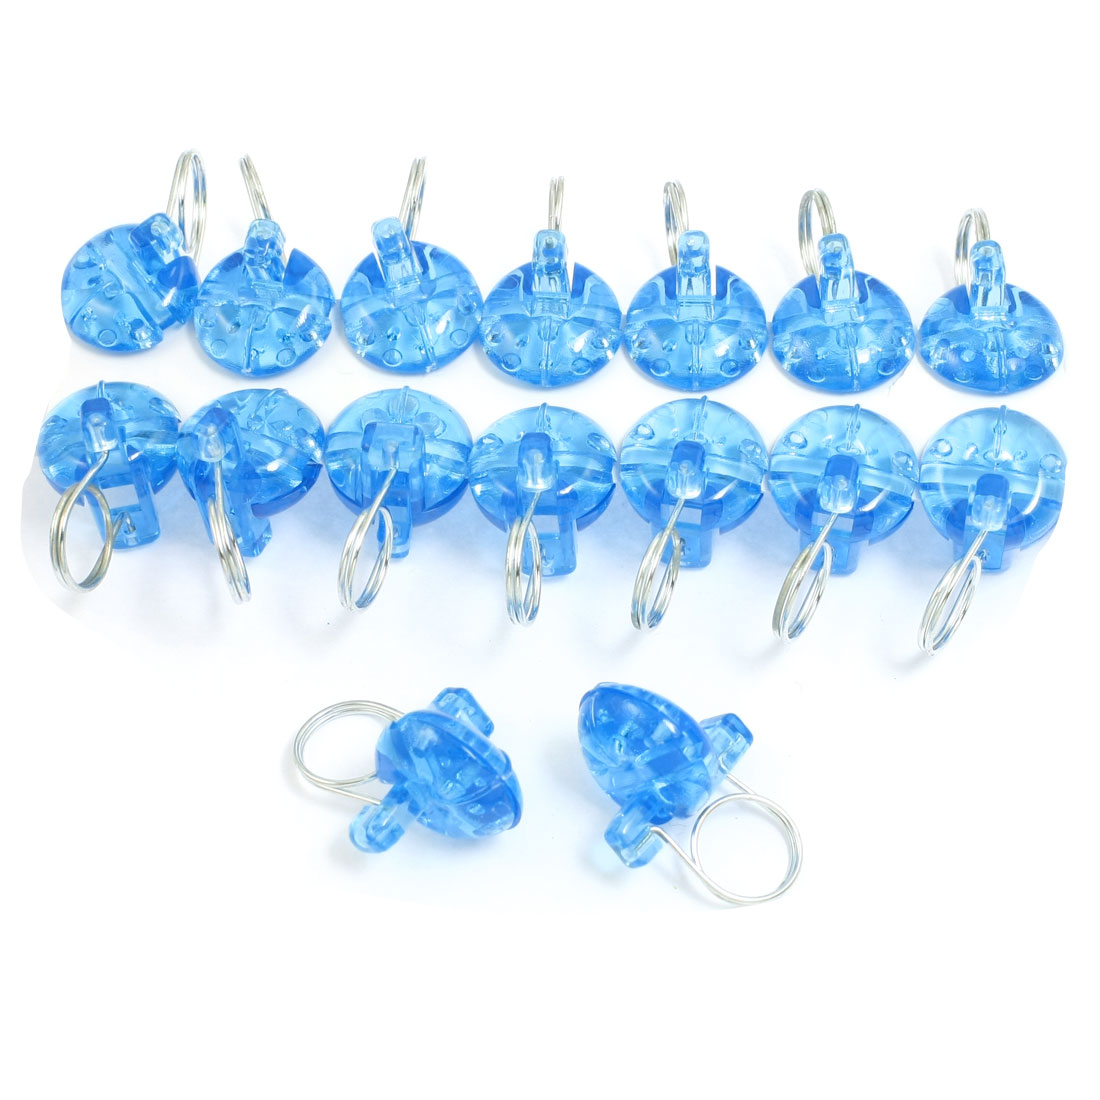 16 Pcs Blue Plastic Office Window Curtain Hanging Ring Clips Rod Mounting Clamps